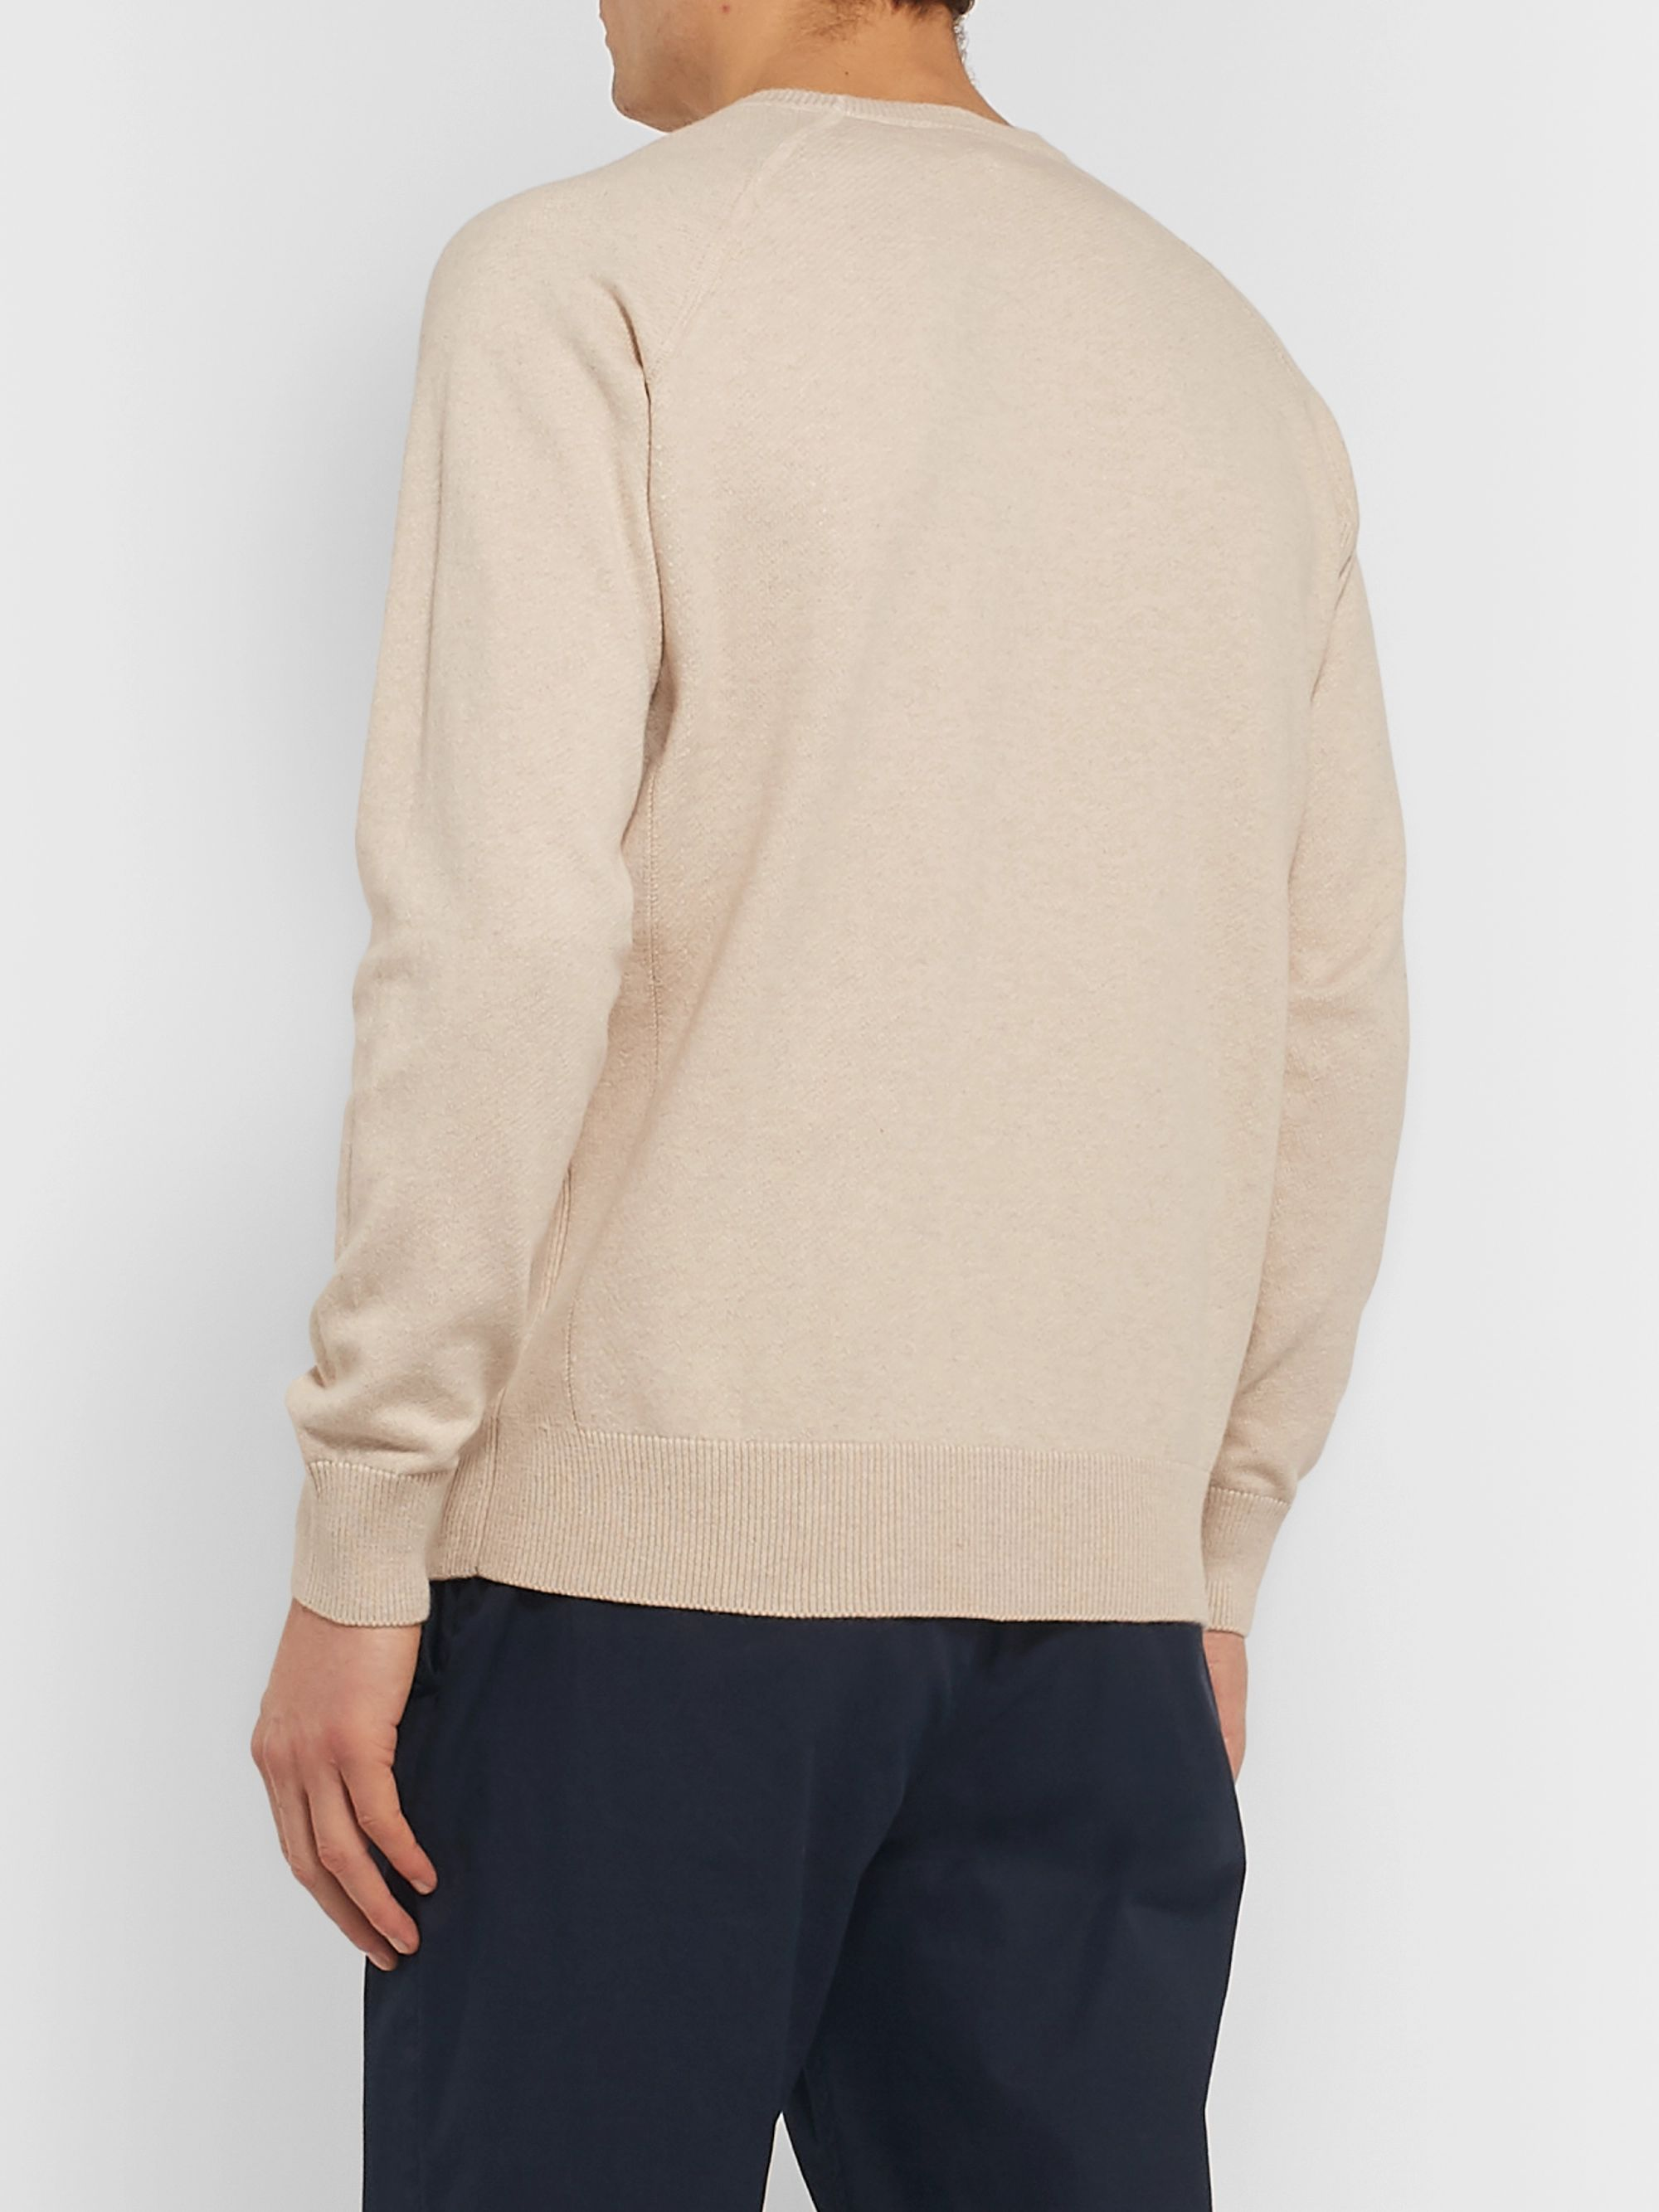 Aspesi Slim-Fit Loopback Cotton, Cashmere and Wool-Blend Sweater